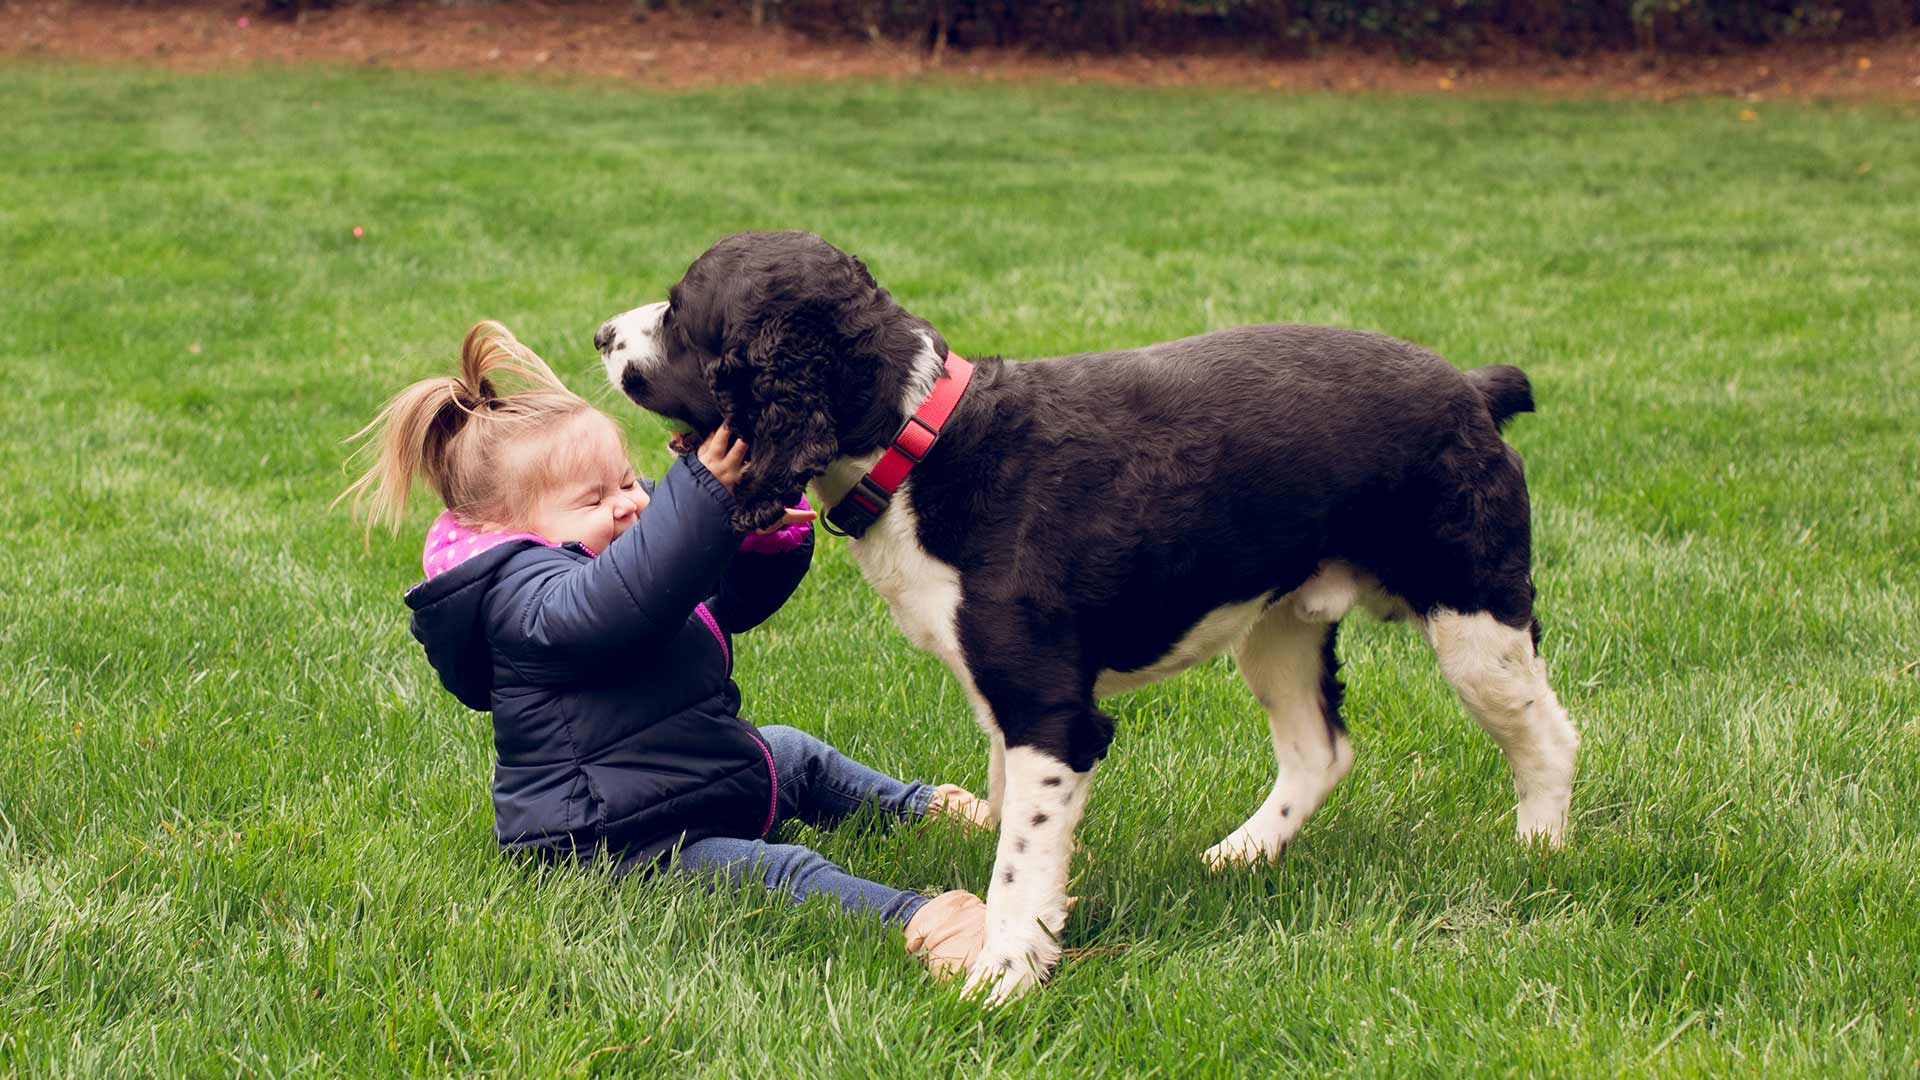 A girl and a dog playing on a green lawn that receives regular lawn care in Roswell, GA.